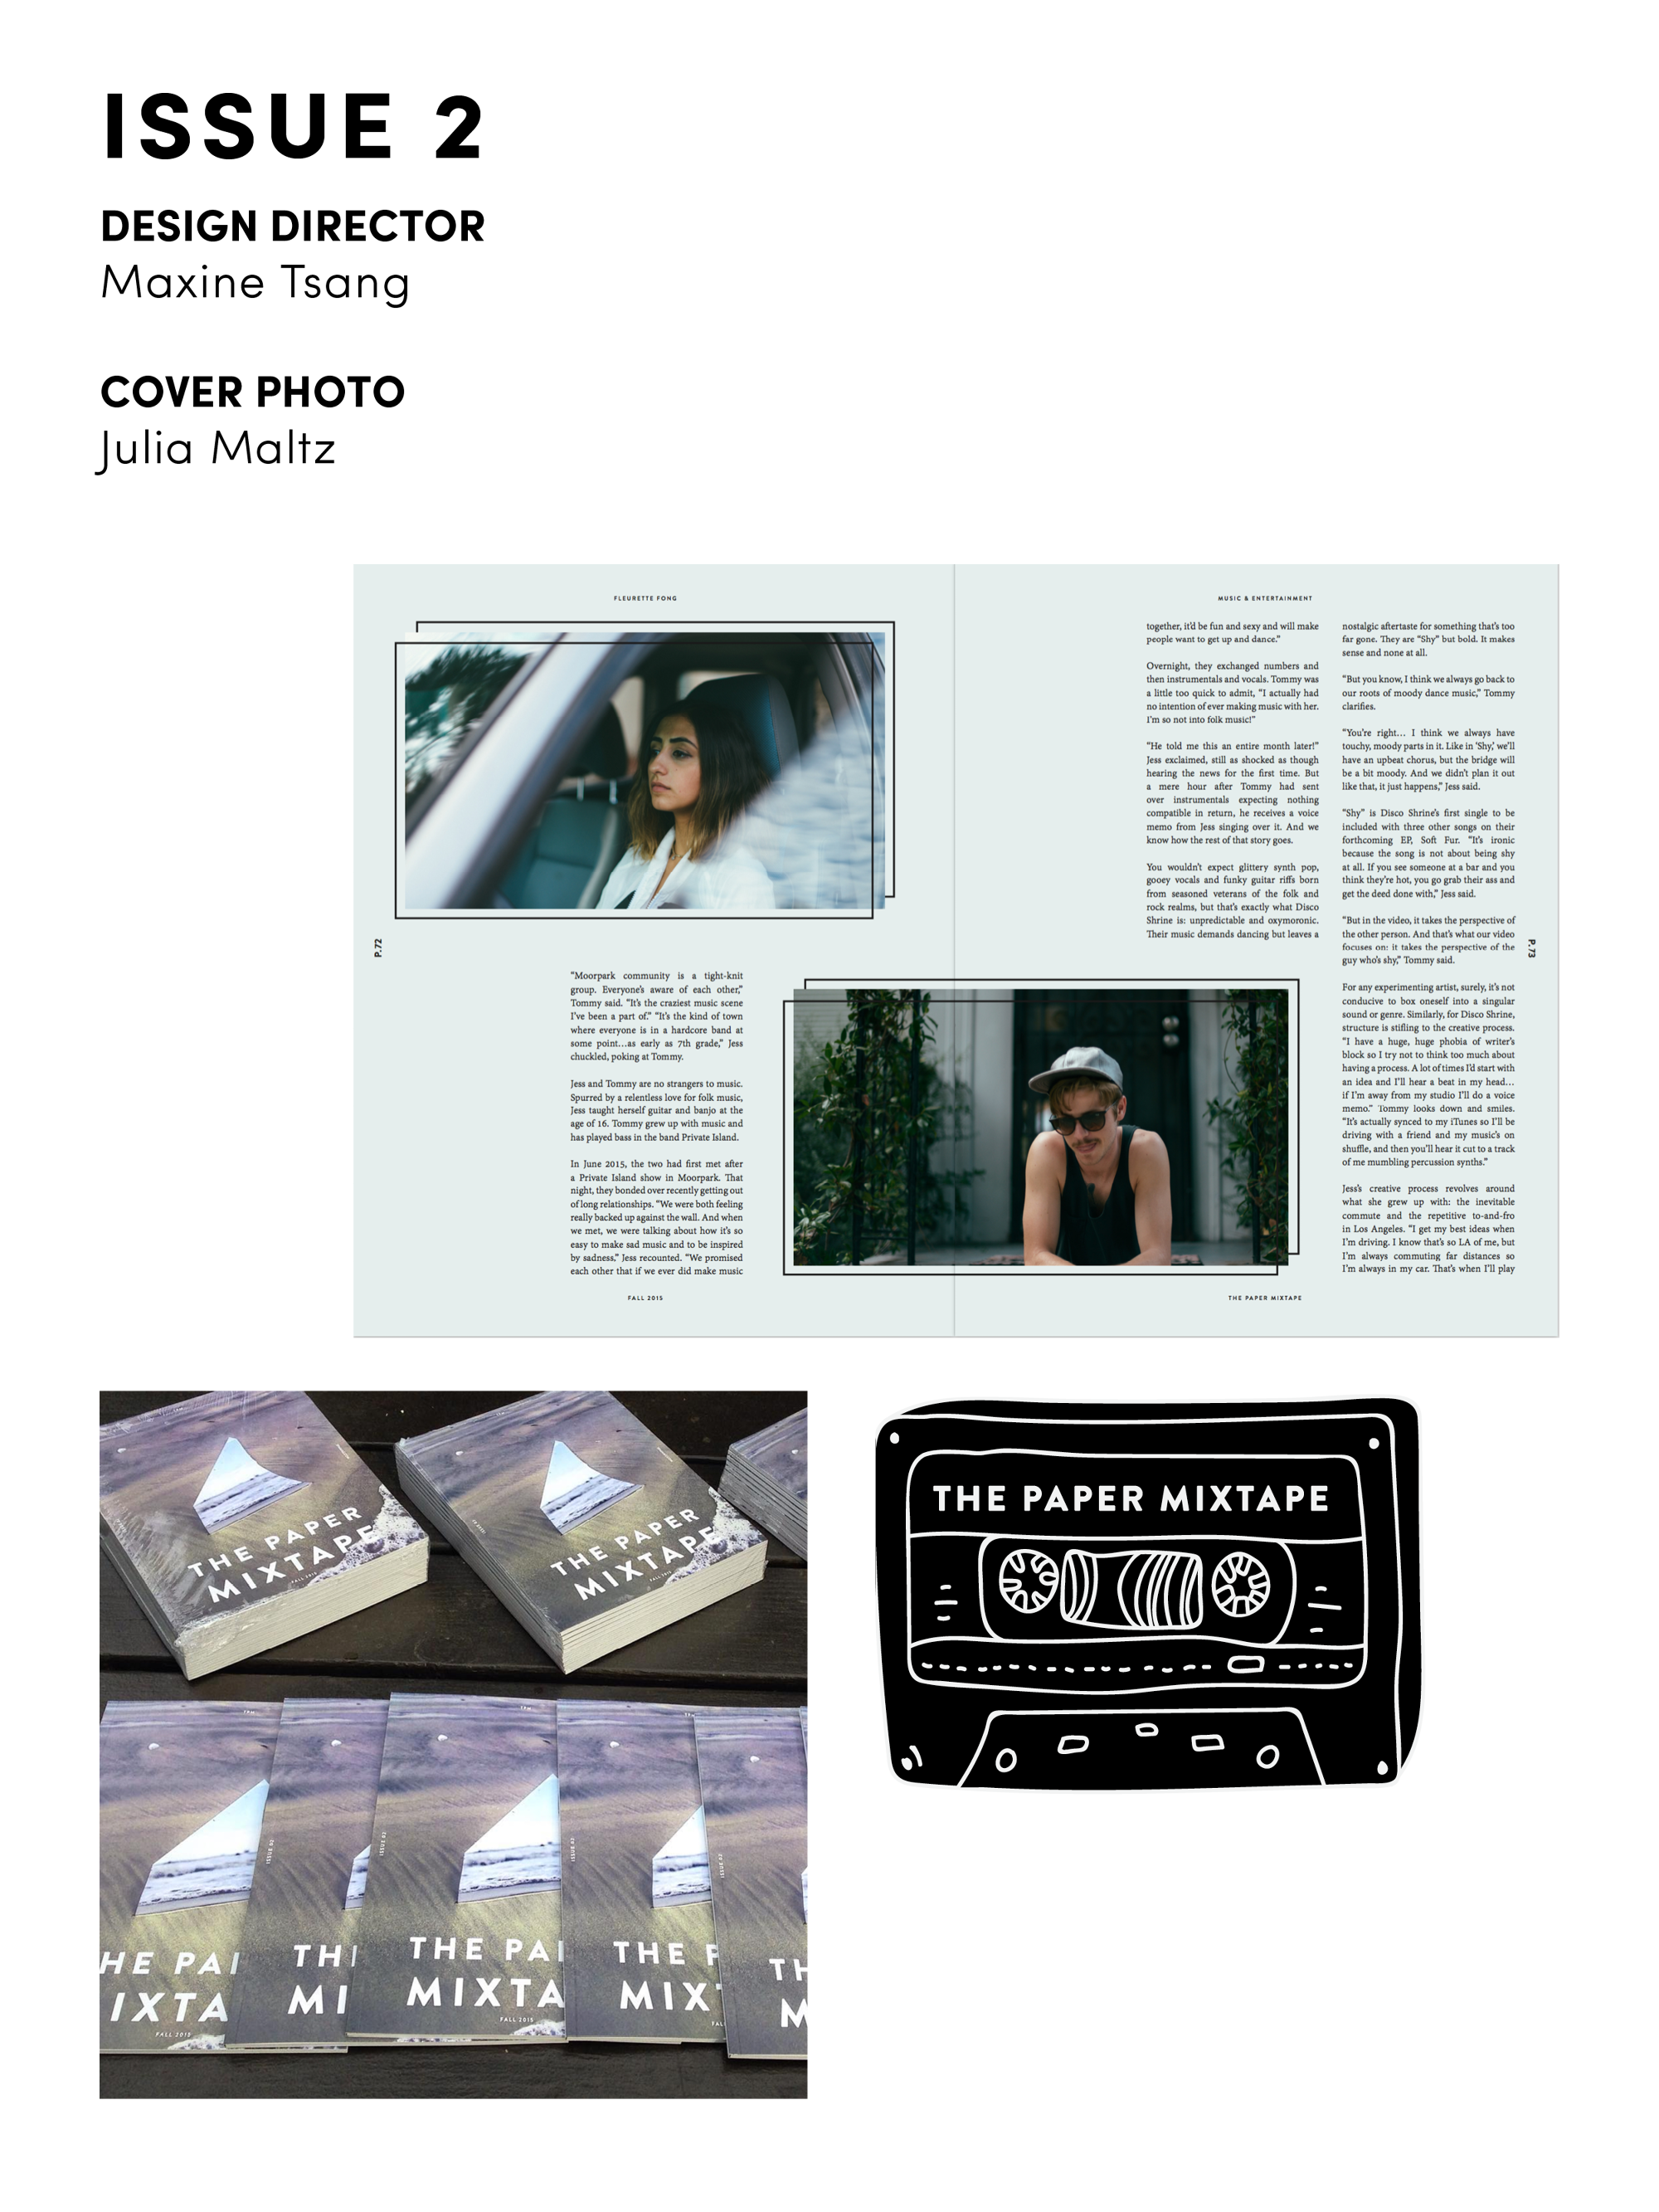 The paper mixtape morgan cadigan additional credits issue 1 tee artwork isabella kelly ramirez issue 2 article fleurette fong photos olivia lim issue 3 photo julia maltz issue 4 photo alex ccuart Images